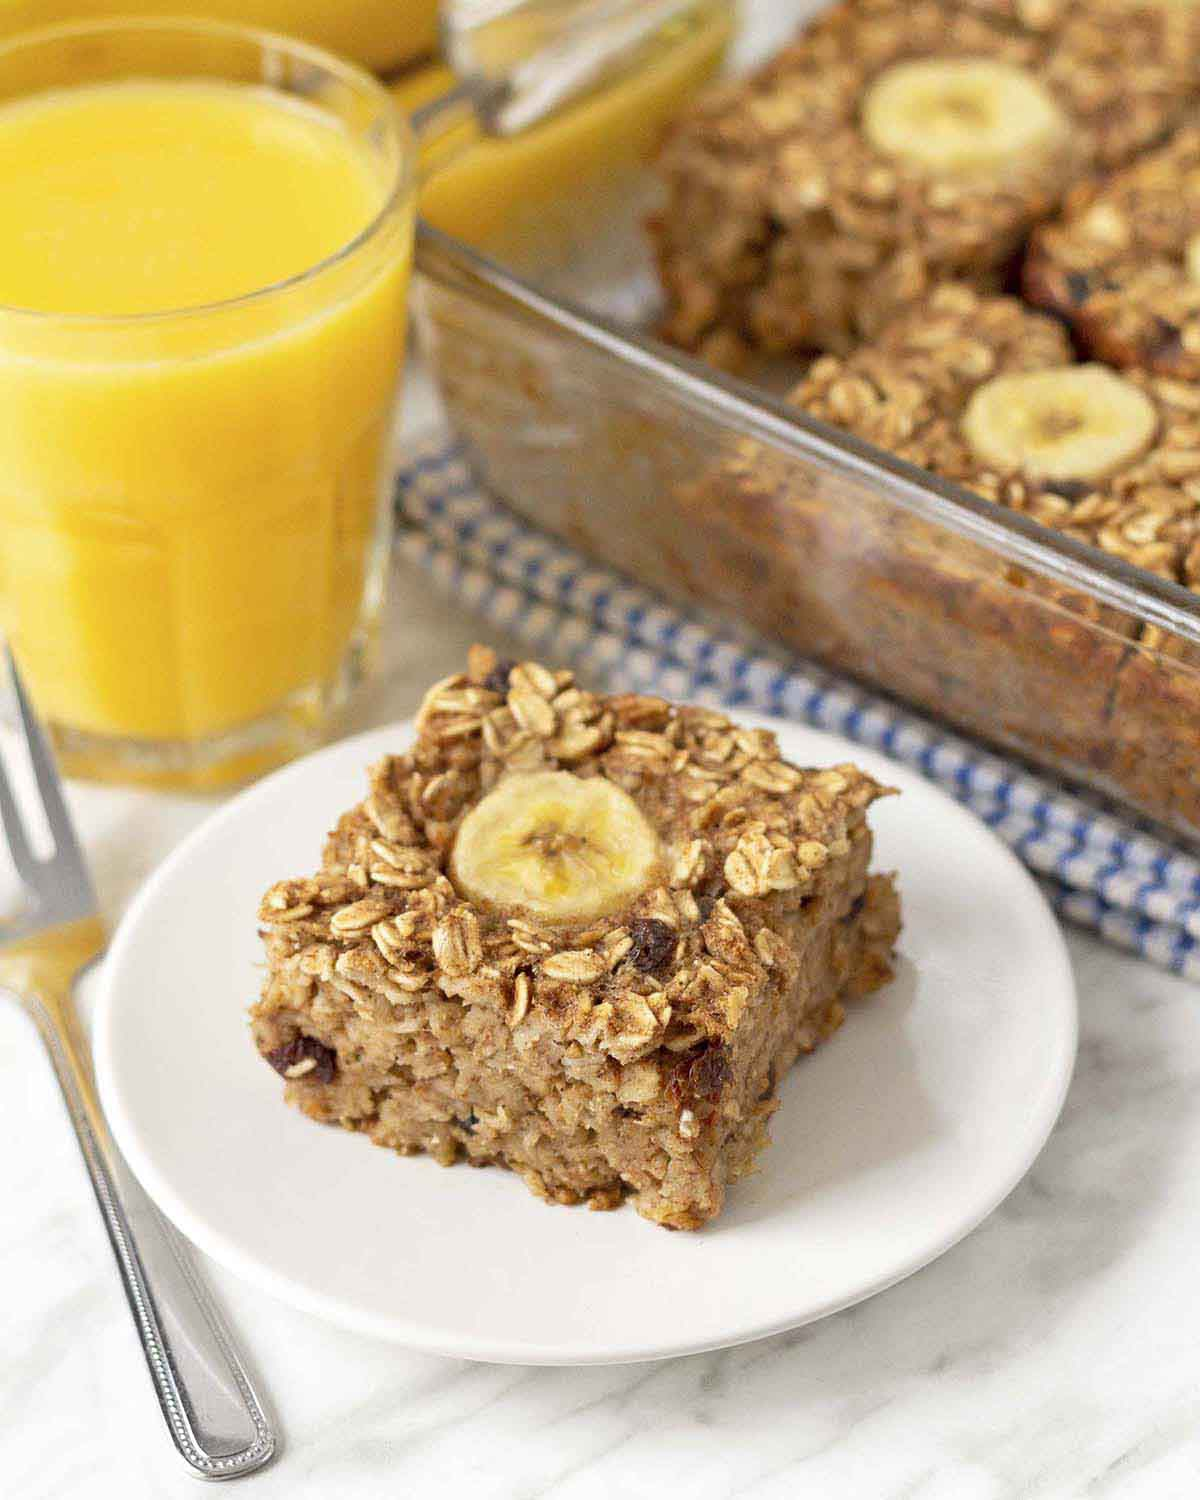 A square of banana bread baked oatmeal on a white plate, a fork sits to the left of the plate.